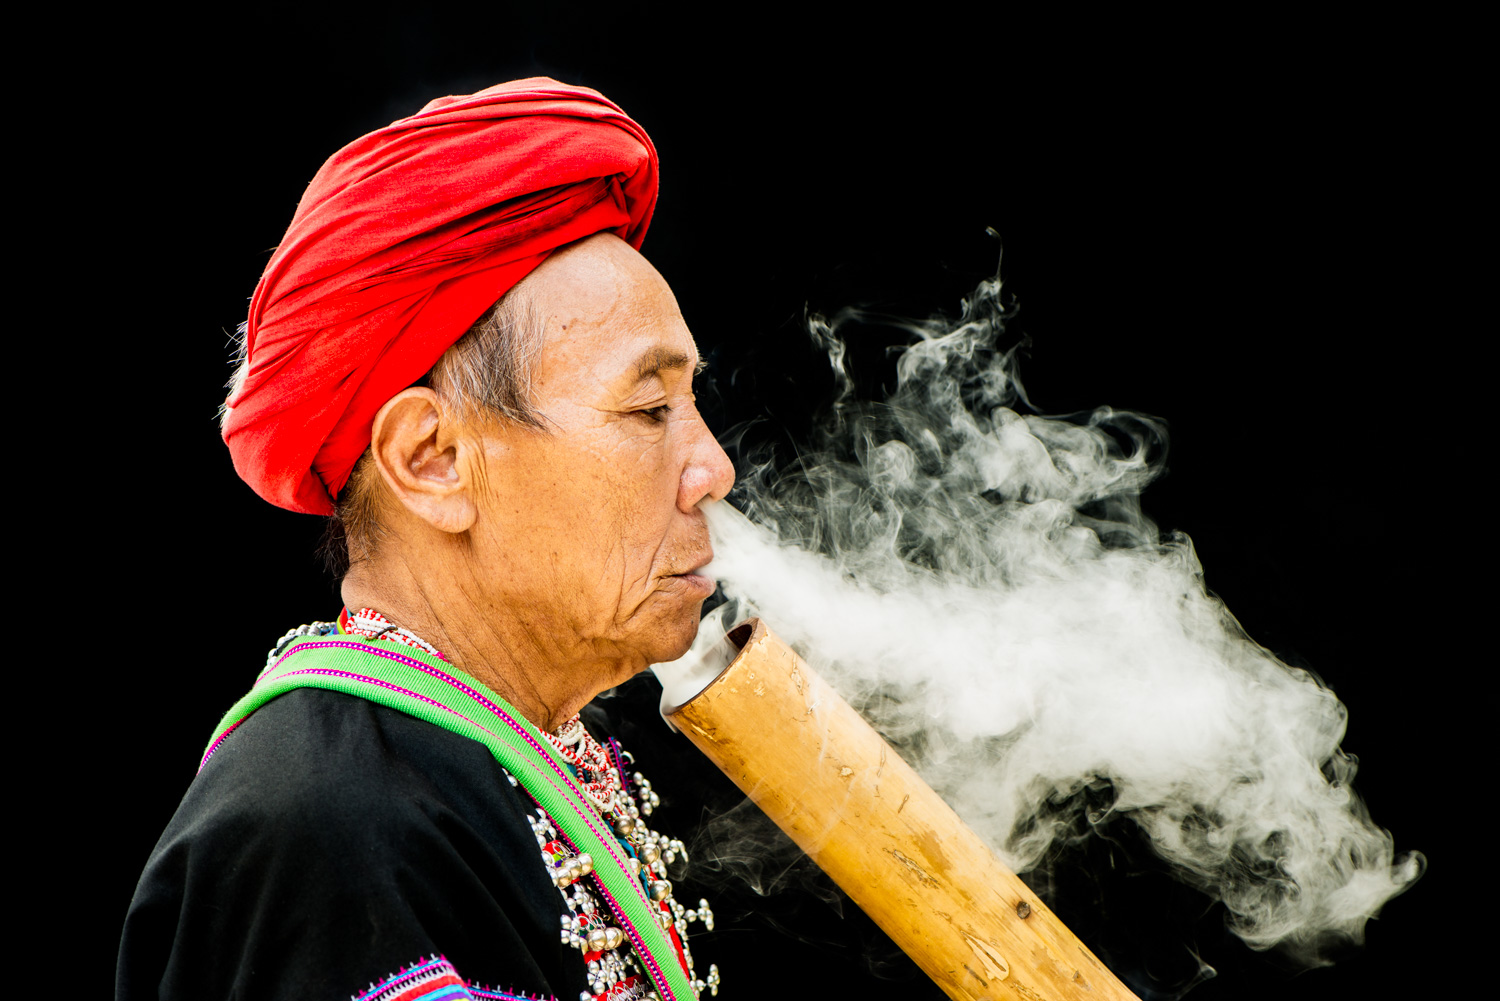 Lahu man smoking a bong photograph with intent